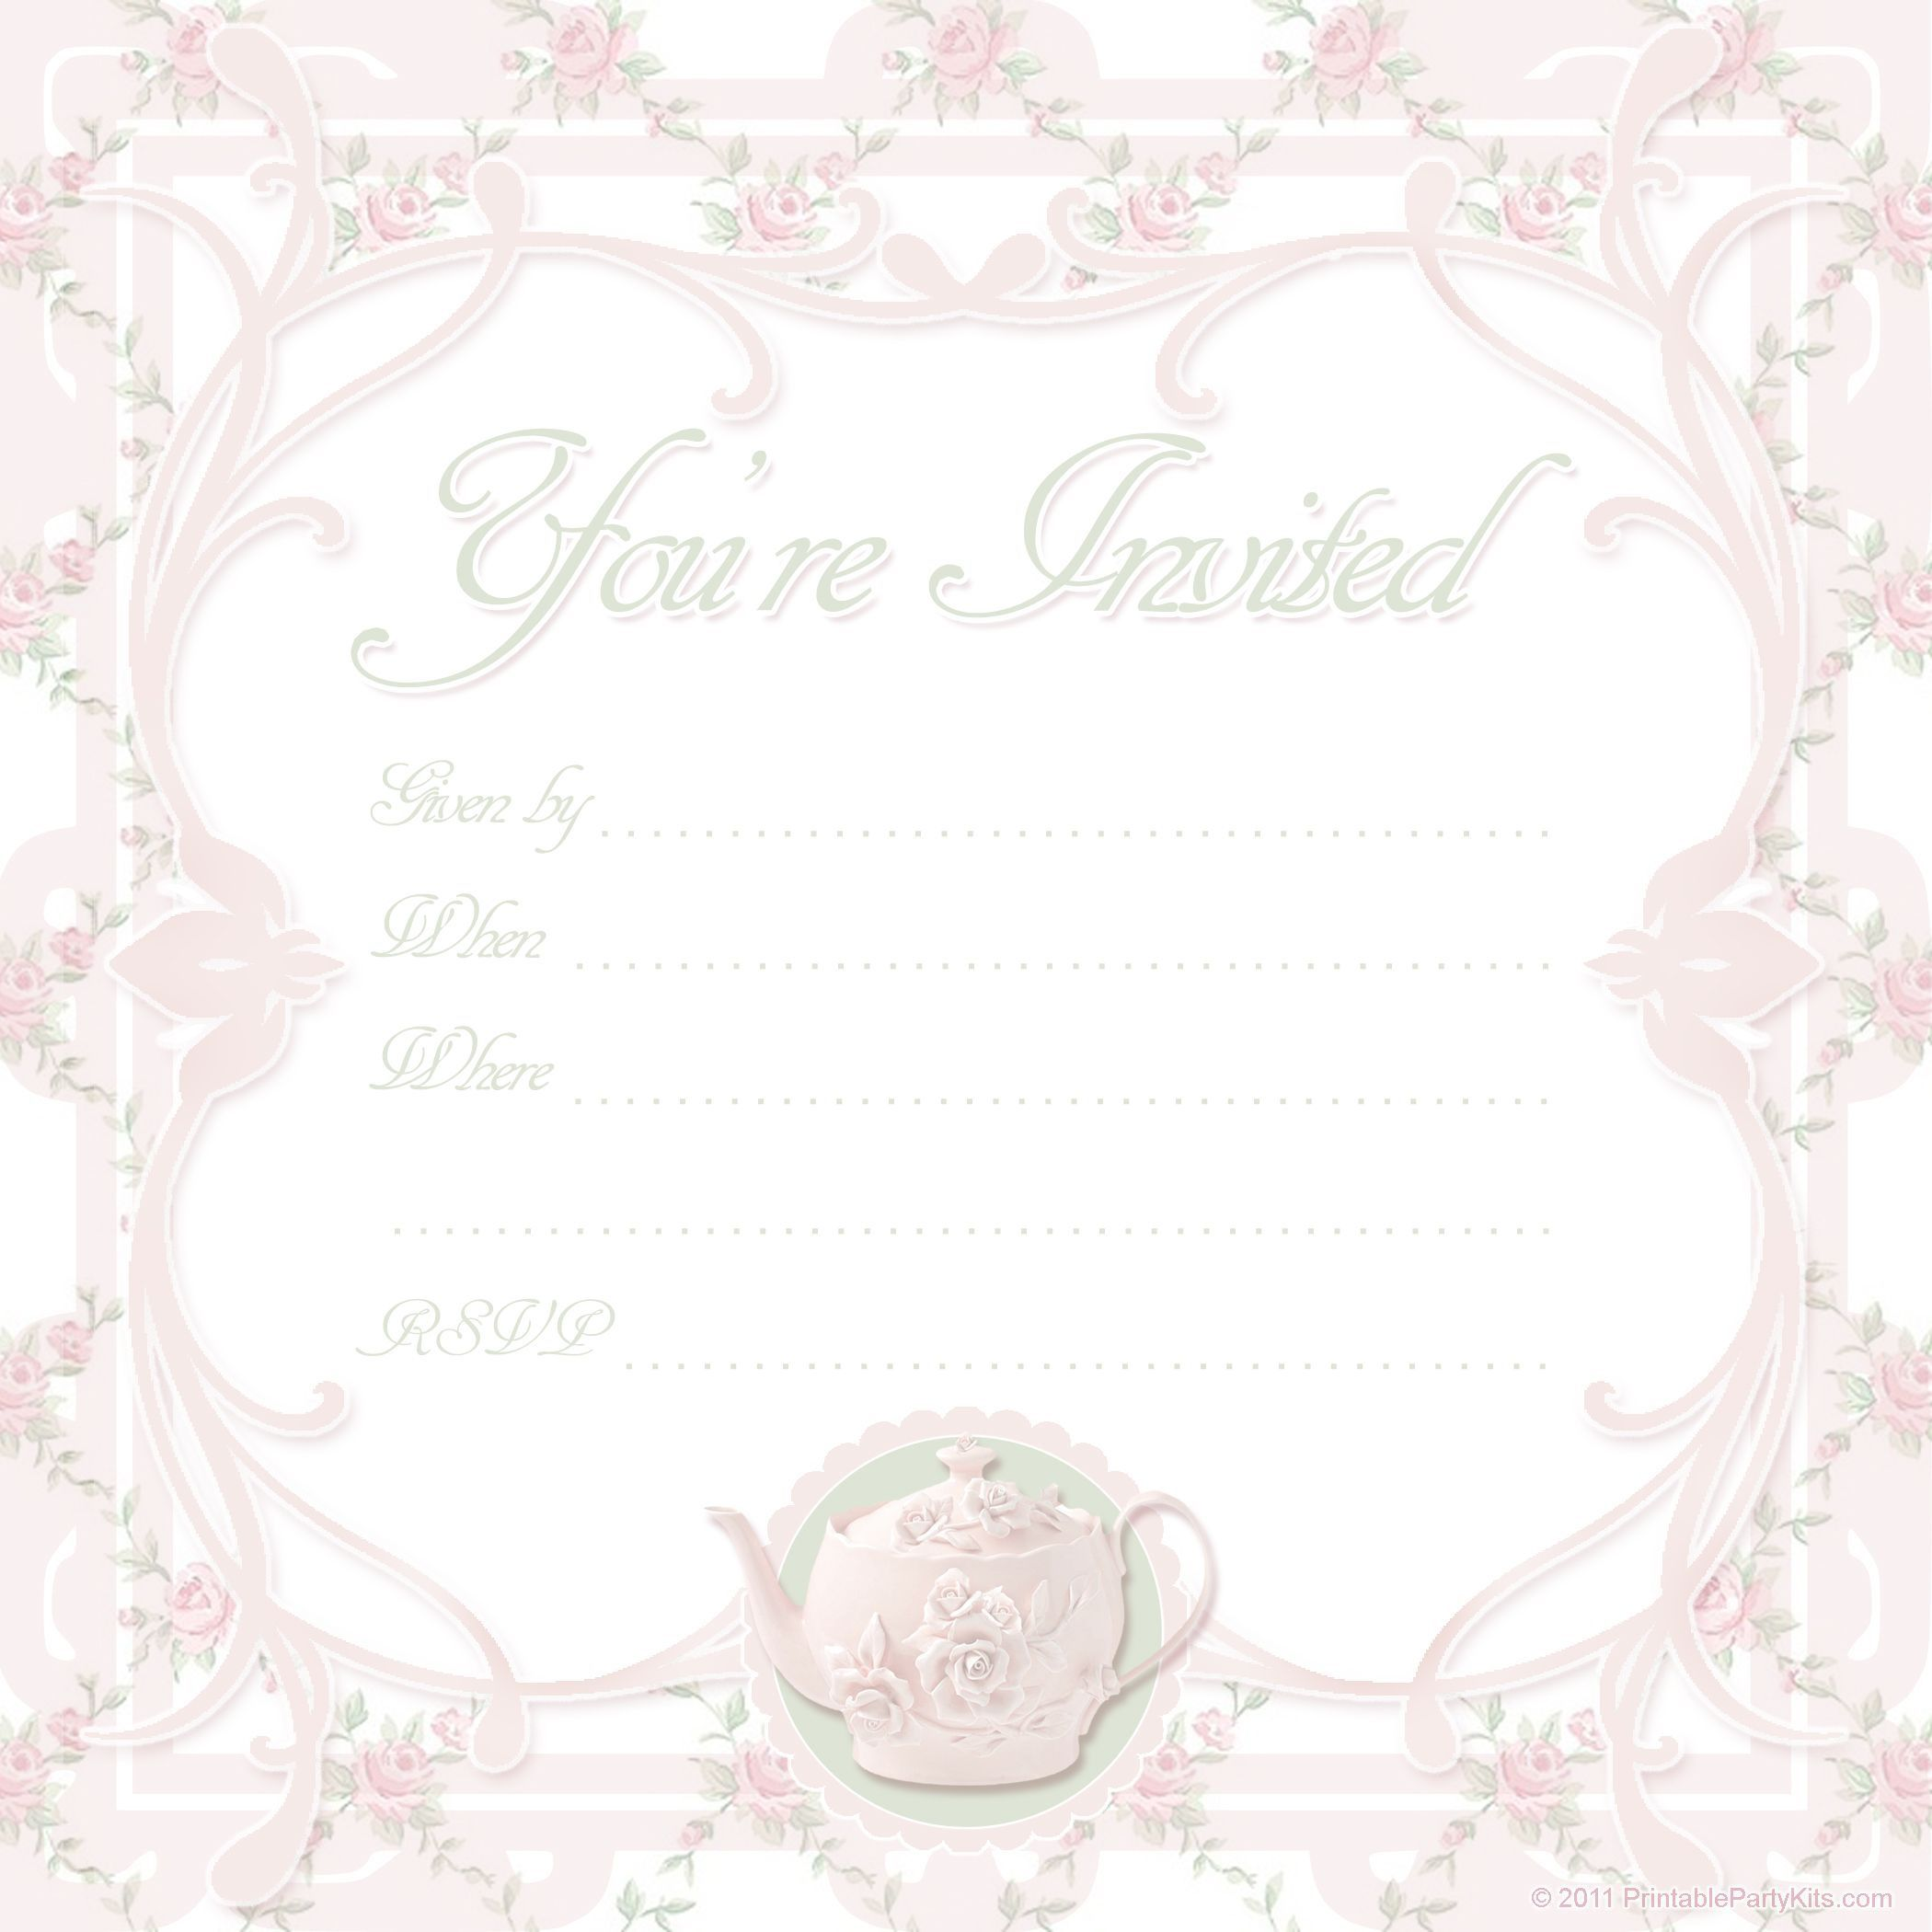 000 Unbelievable Tea Party Invitation Template Free Sample  Vintage Princes PrintableFull